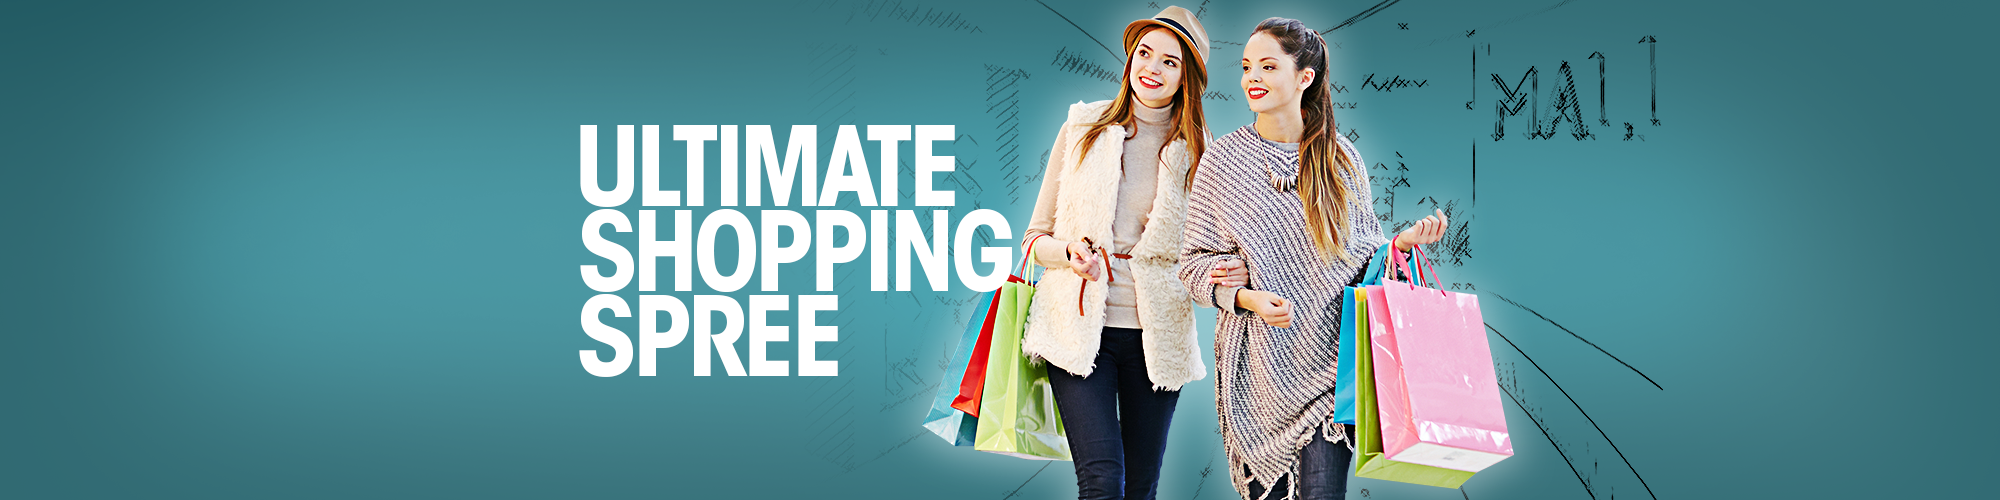 JRFM-Ultimate-Shopping-Spree-contest-image-2000x500